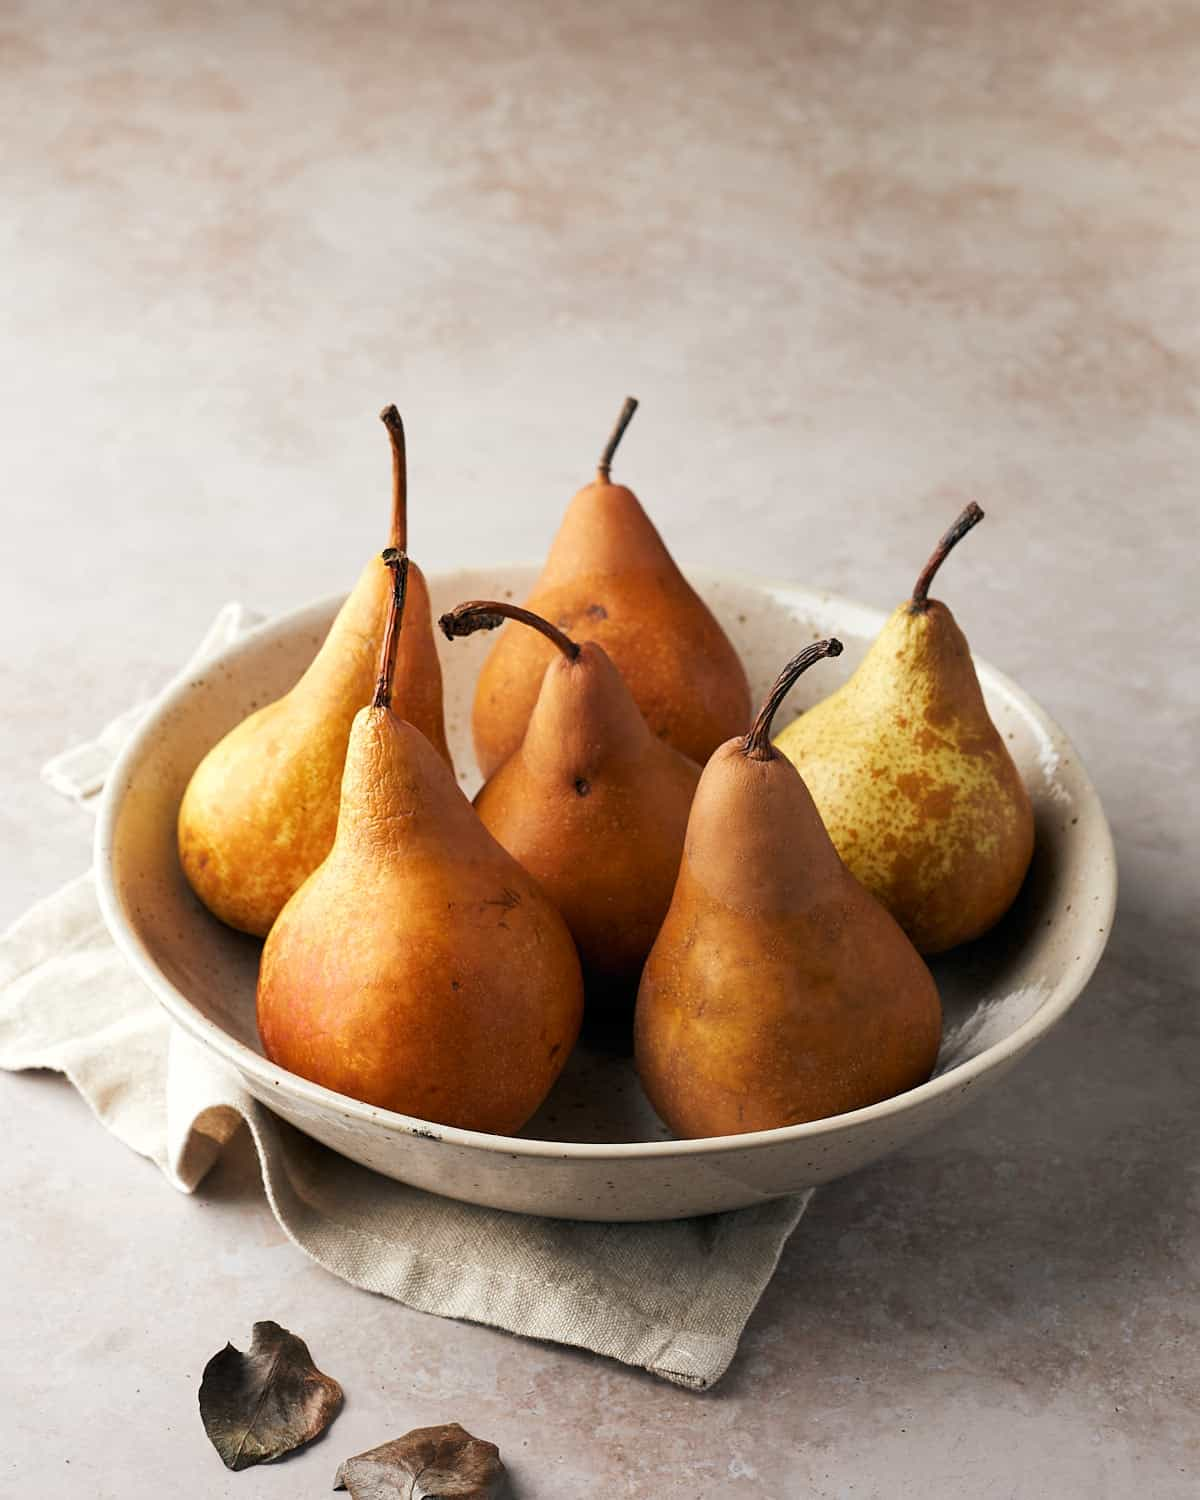 Six bosc pears in a bowl with a beige napkin